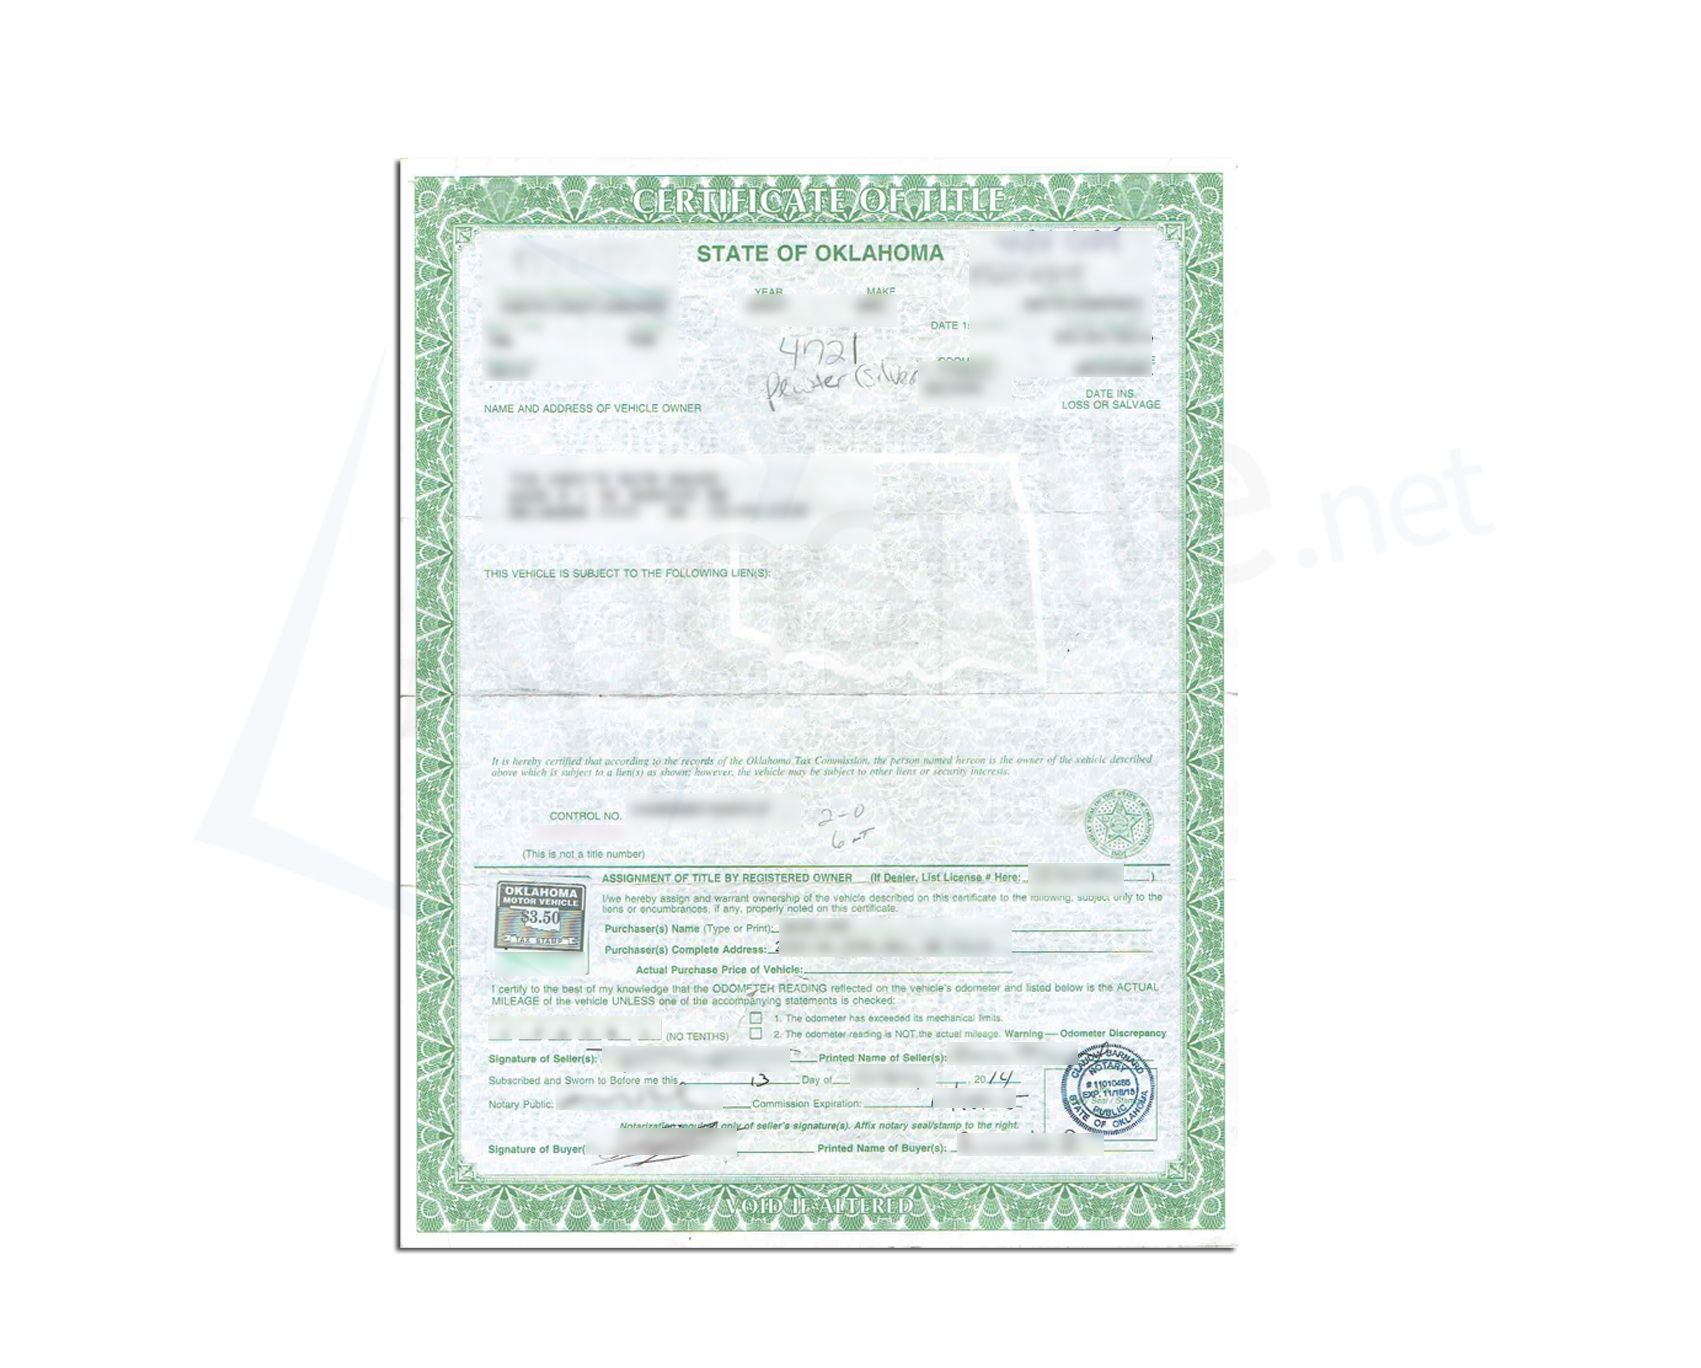 State of Oklahoma Car Title sealed by a Public Notary